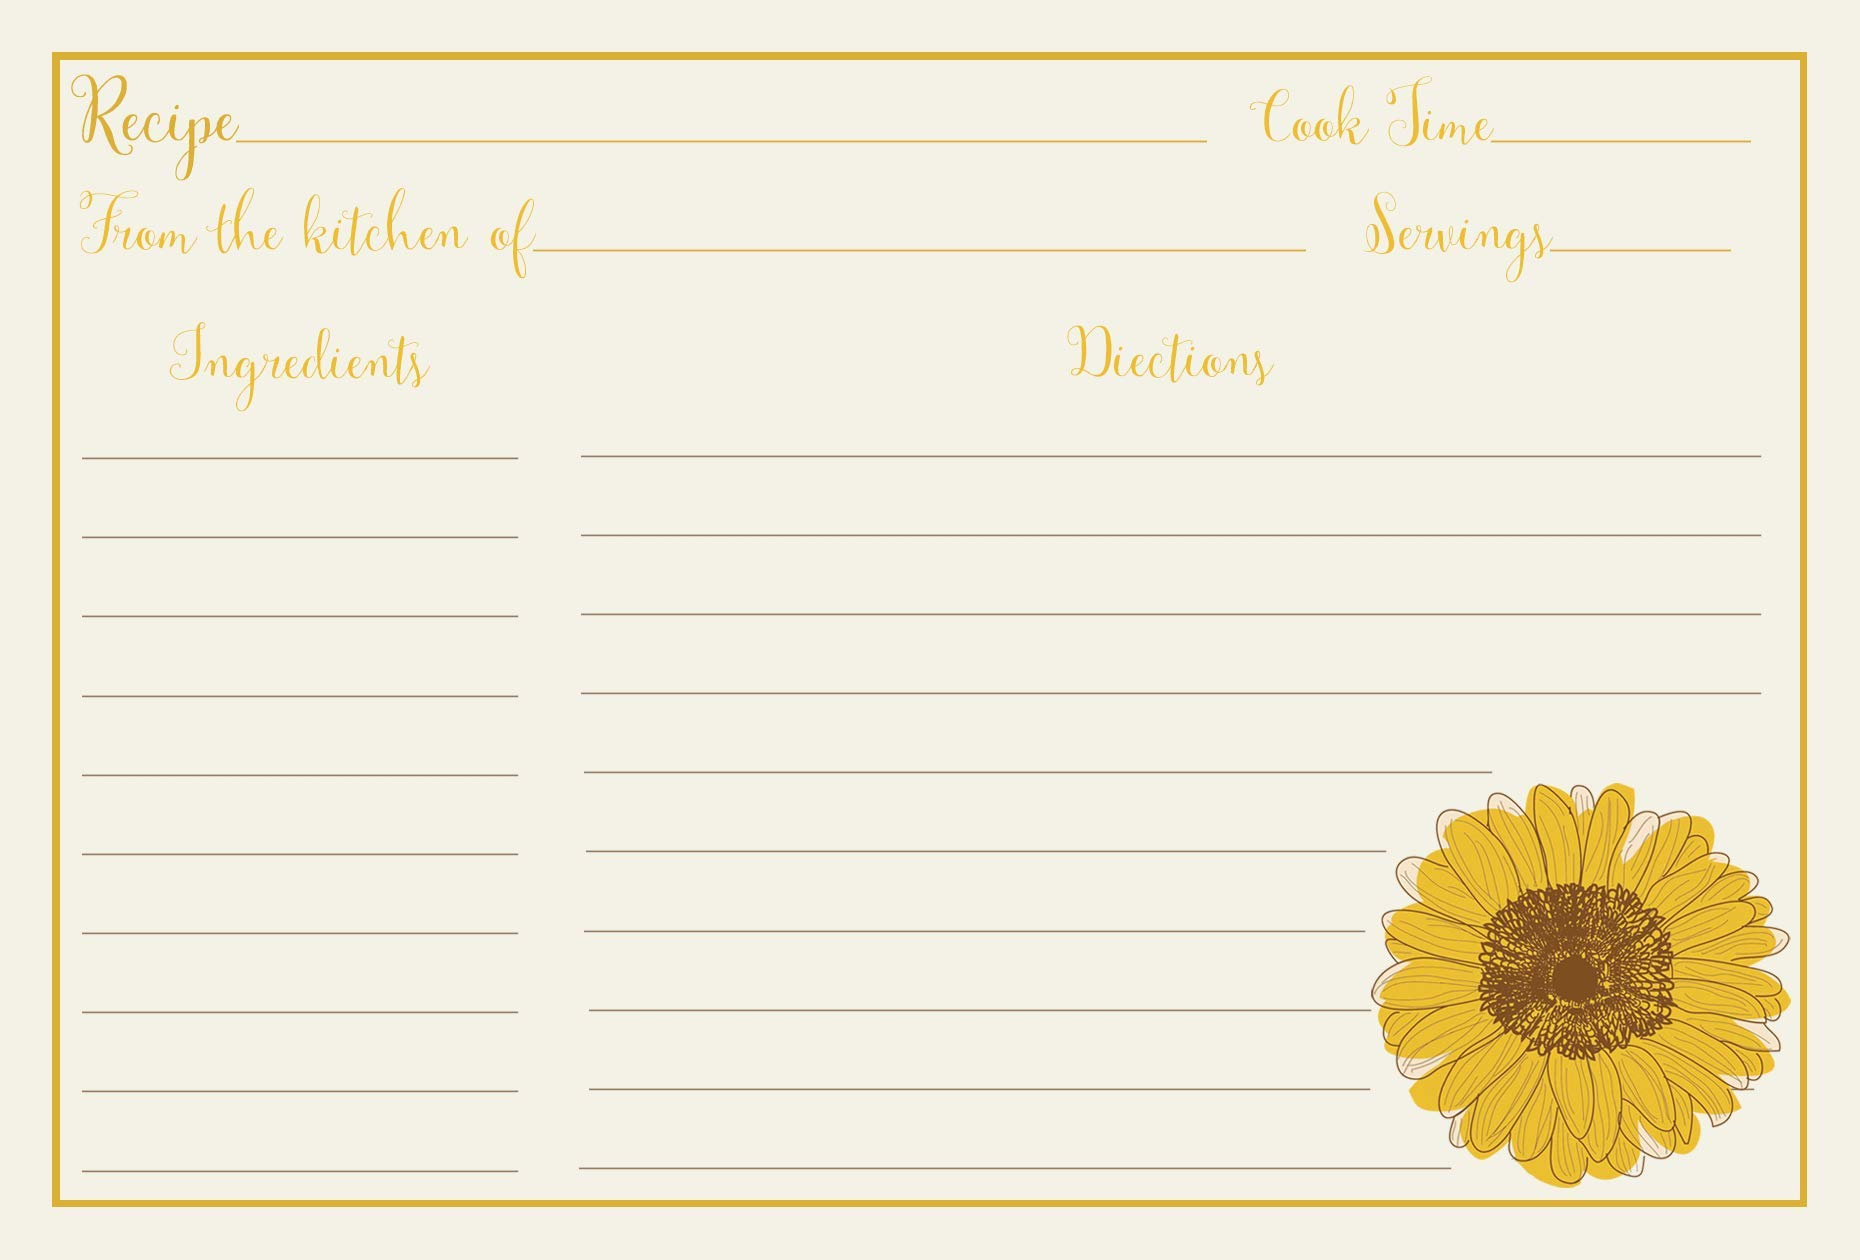 Recipe Cards, Sunflowers, Sunflower, Bridal Shower, Yellow, Country, Floral, Housewarming, Shabby Chic, Wedding, Gift, Double Sided with Lines, Size 4 x 6, 24 Printed Cards by The Invite Lady